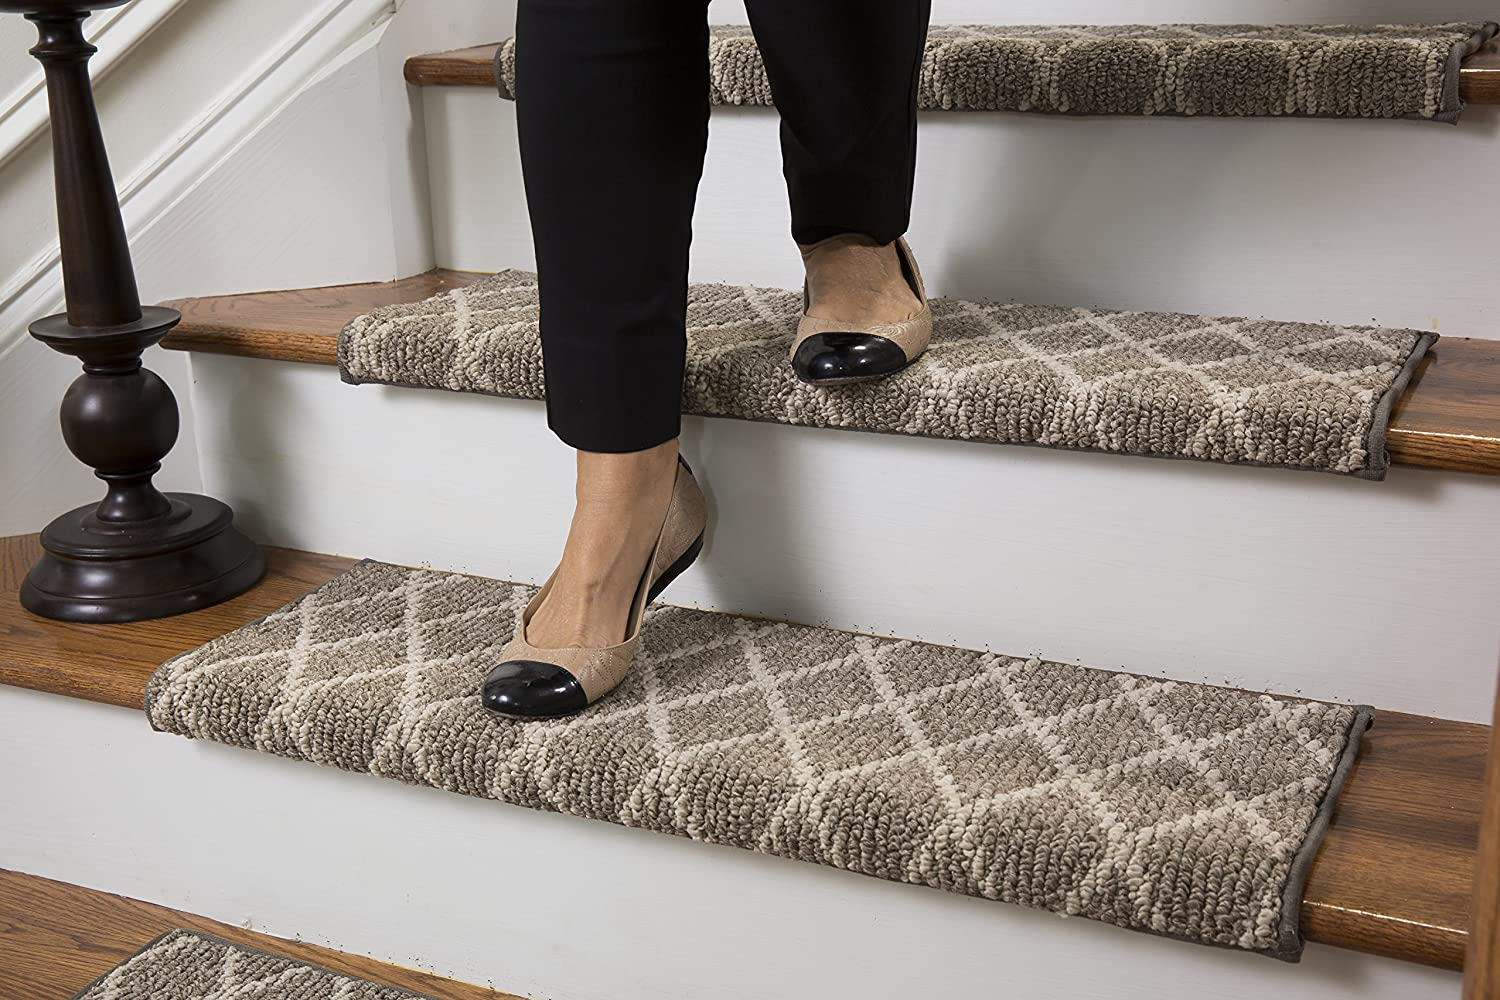 Amazon.com: Jardin Wool Inspired Bullnose Carpet Stair Tread with ...